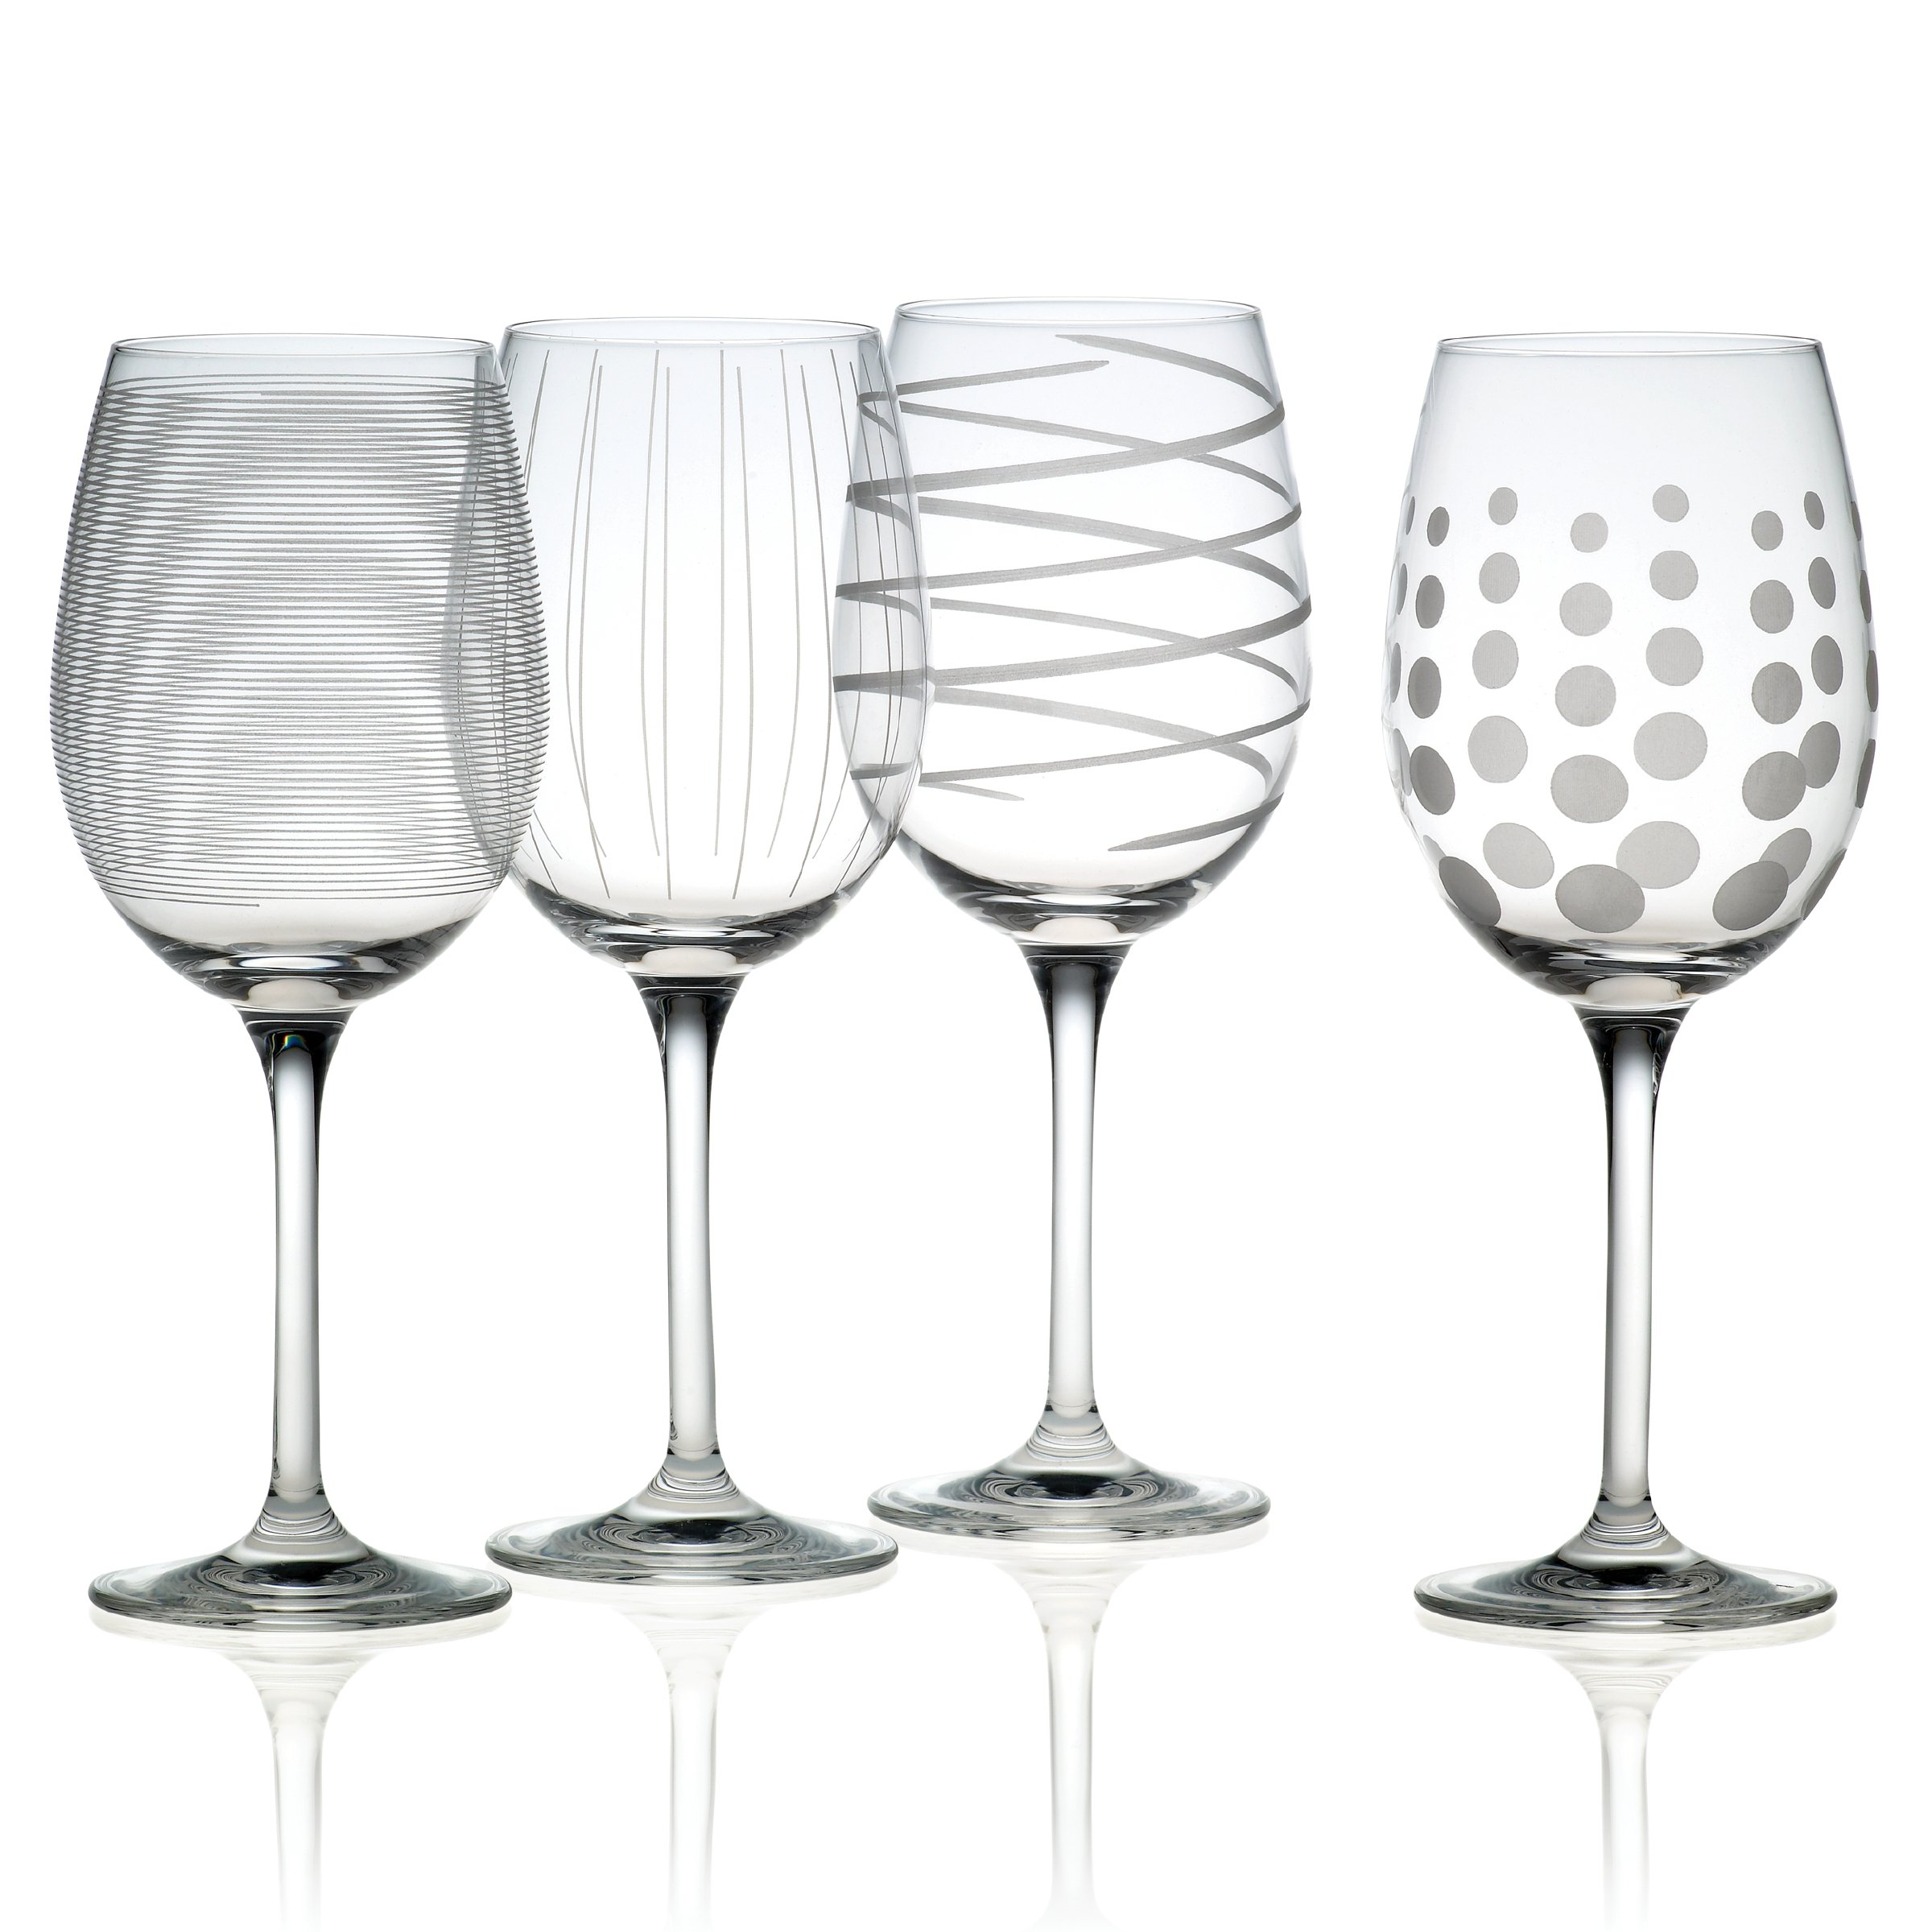 Mikasa Cheers Precision-Etched 16-oz White Wine Glasses, (Set of 4) - SW910-403 by Mikasa